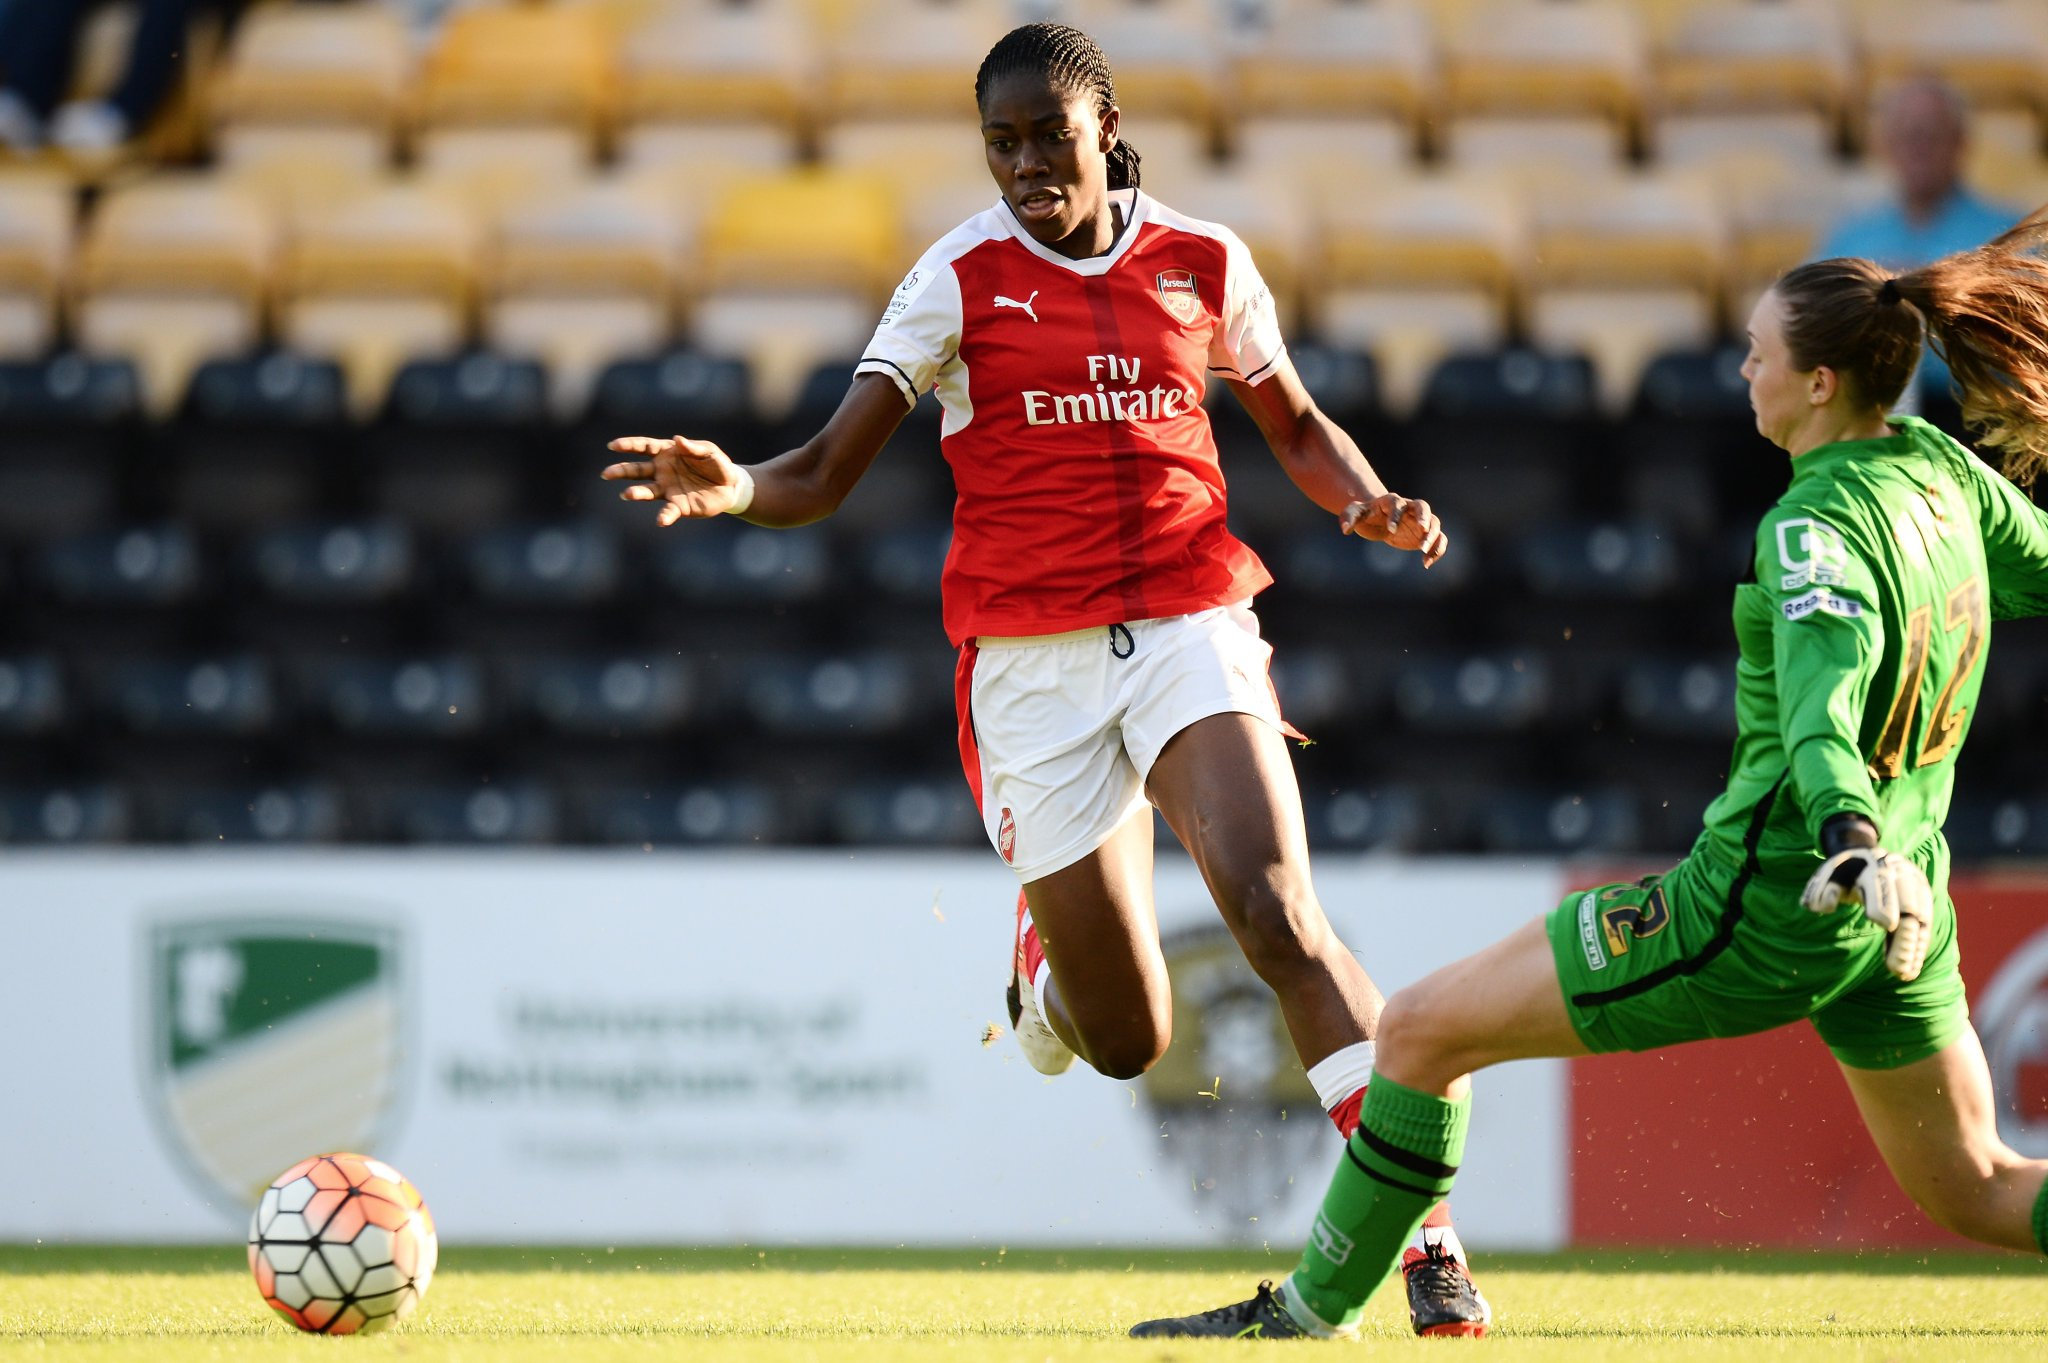 Oshoala Impressive But Arsenal Fall To Man City